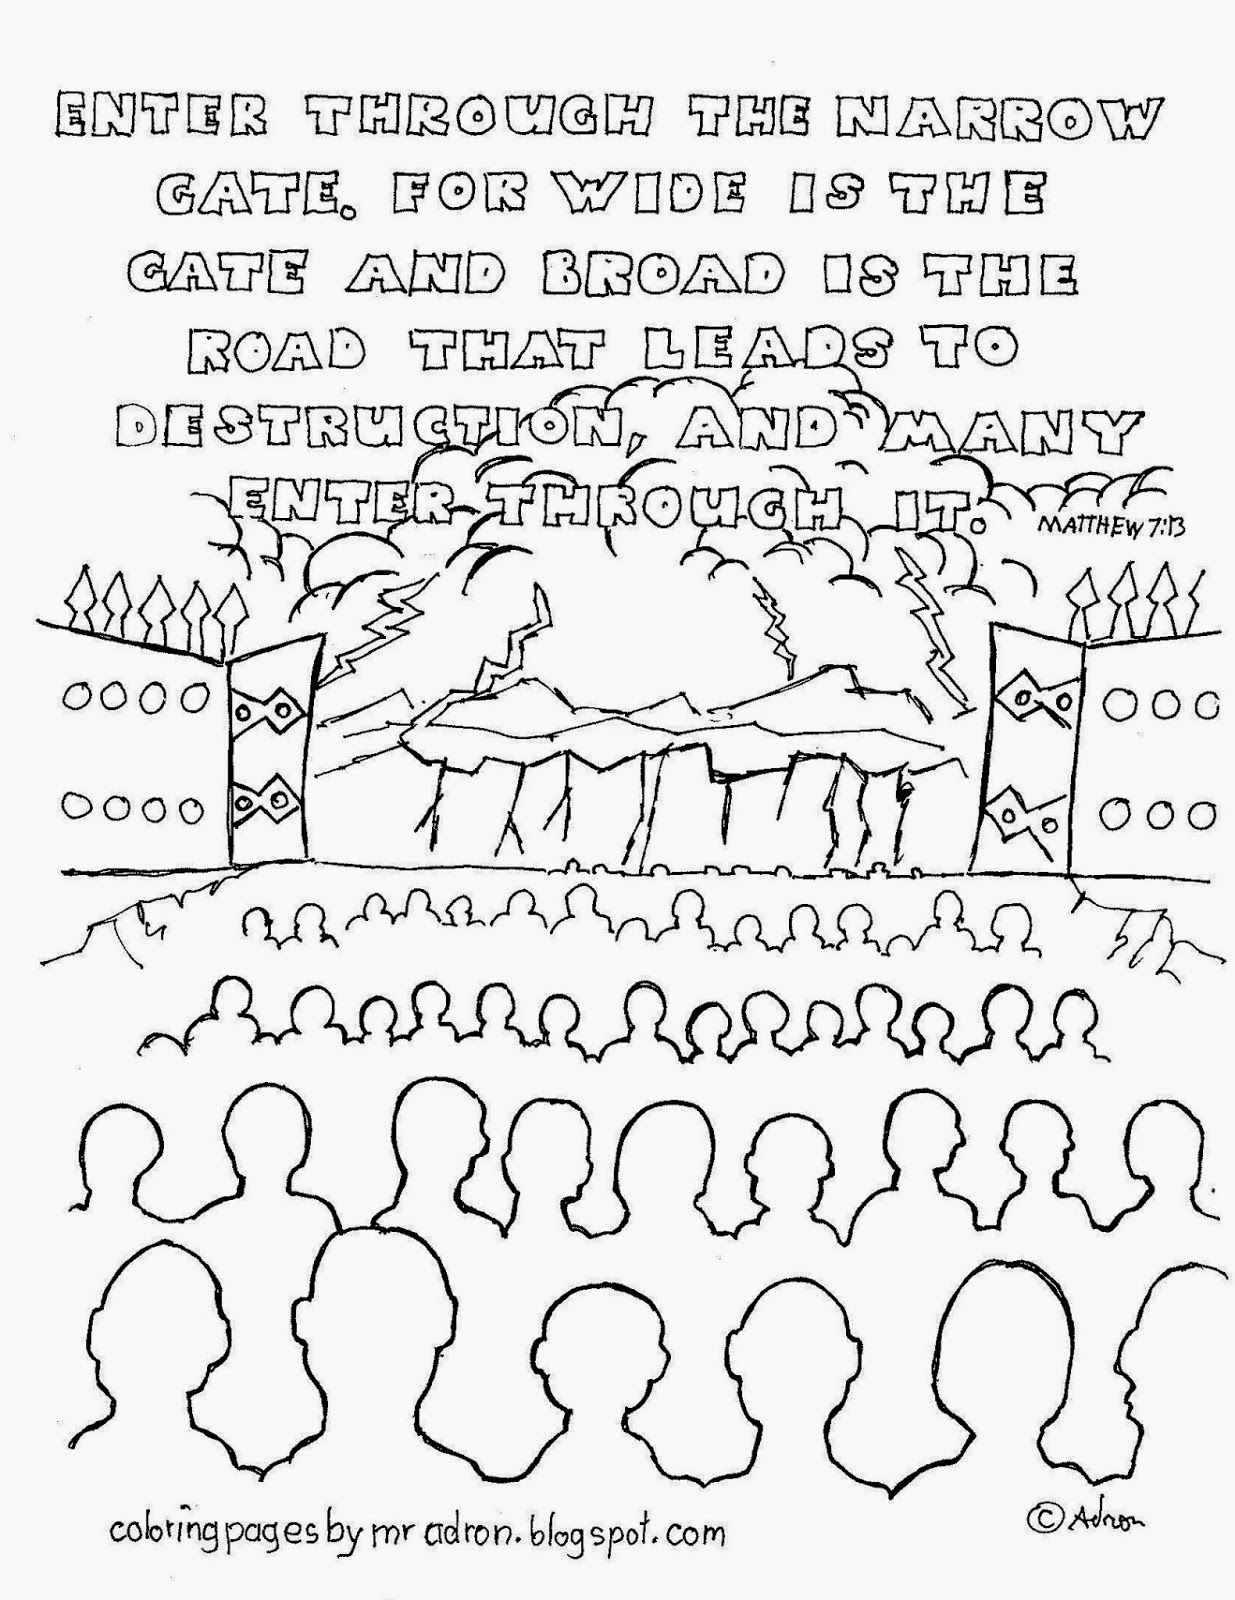 Coloring Pages For Kids By Mr Adron Wide Is The Gate Page Matthew 713